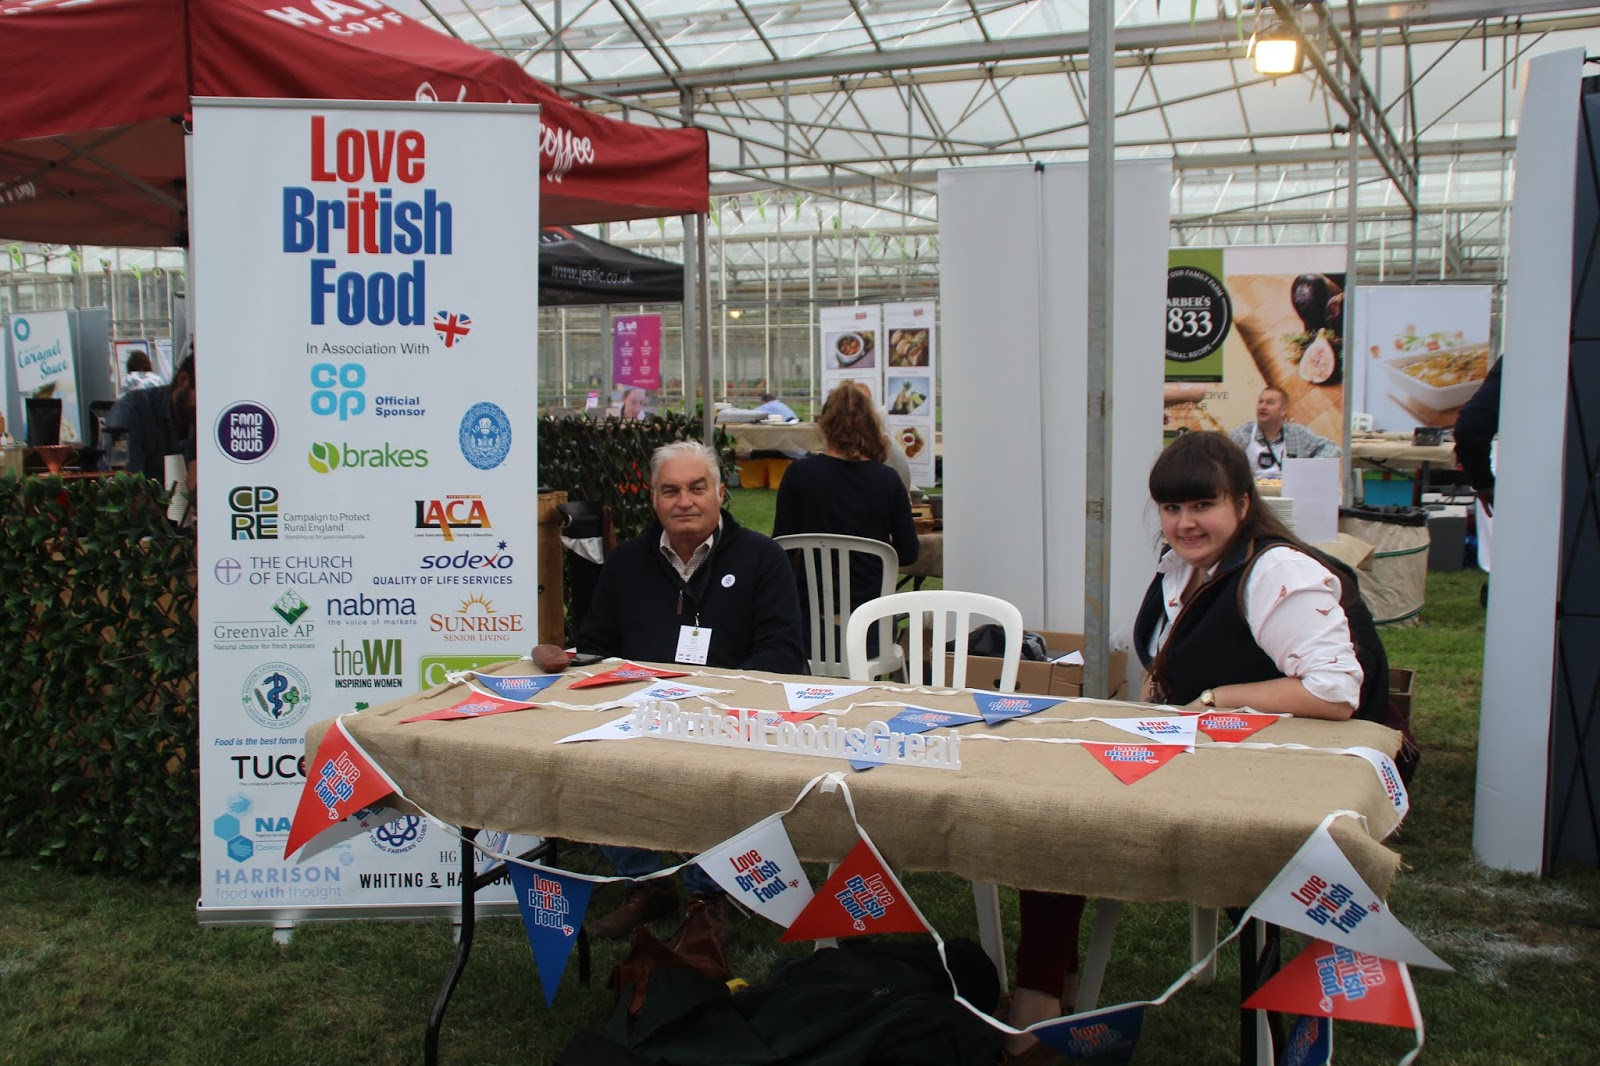 36a4a03aafb It was really encouraging speaking to lots of the chefs at the event as so  many of them were really passionate about using British ingredients  wherever ...